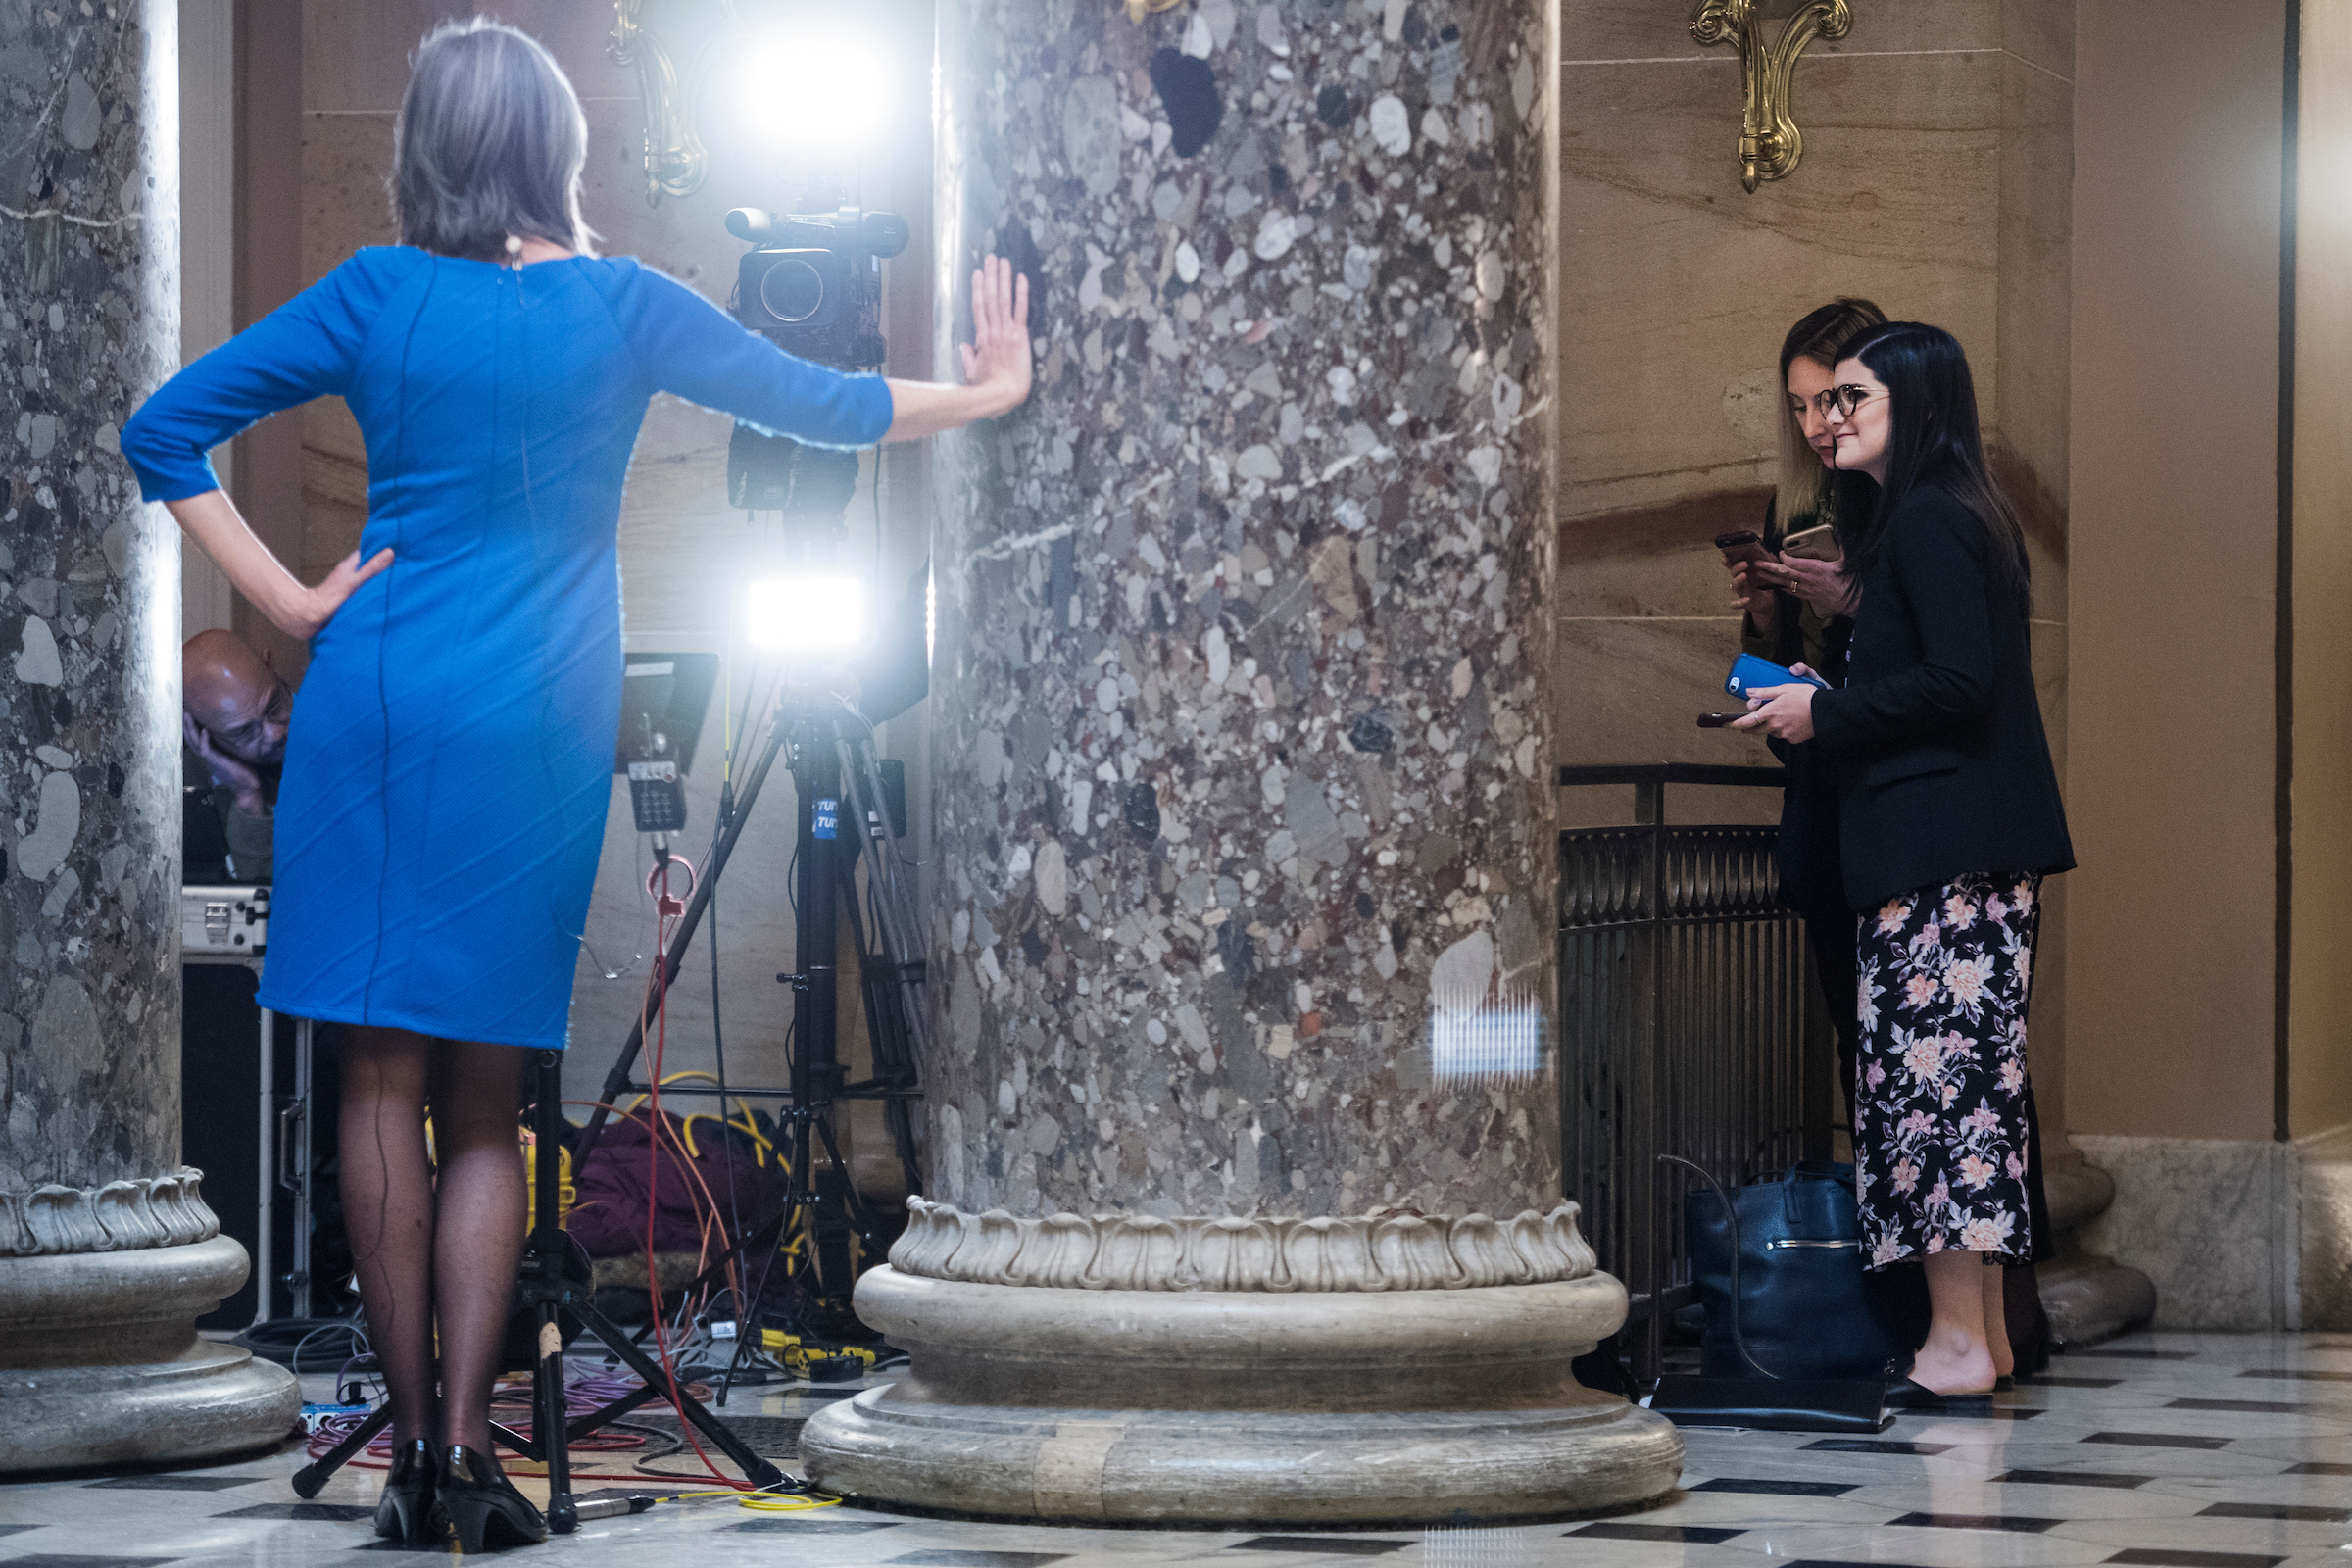 Rep. Katherine Clark, D-Mass., left, vice chair of the House Democratic Caucus, and her aides, wait to conduct a television interview in the Capitol's Statuary Hall on Wednesday, Jan. 23, 2019. (Tom Williams/CQ Roll Call)